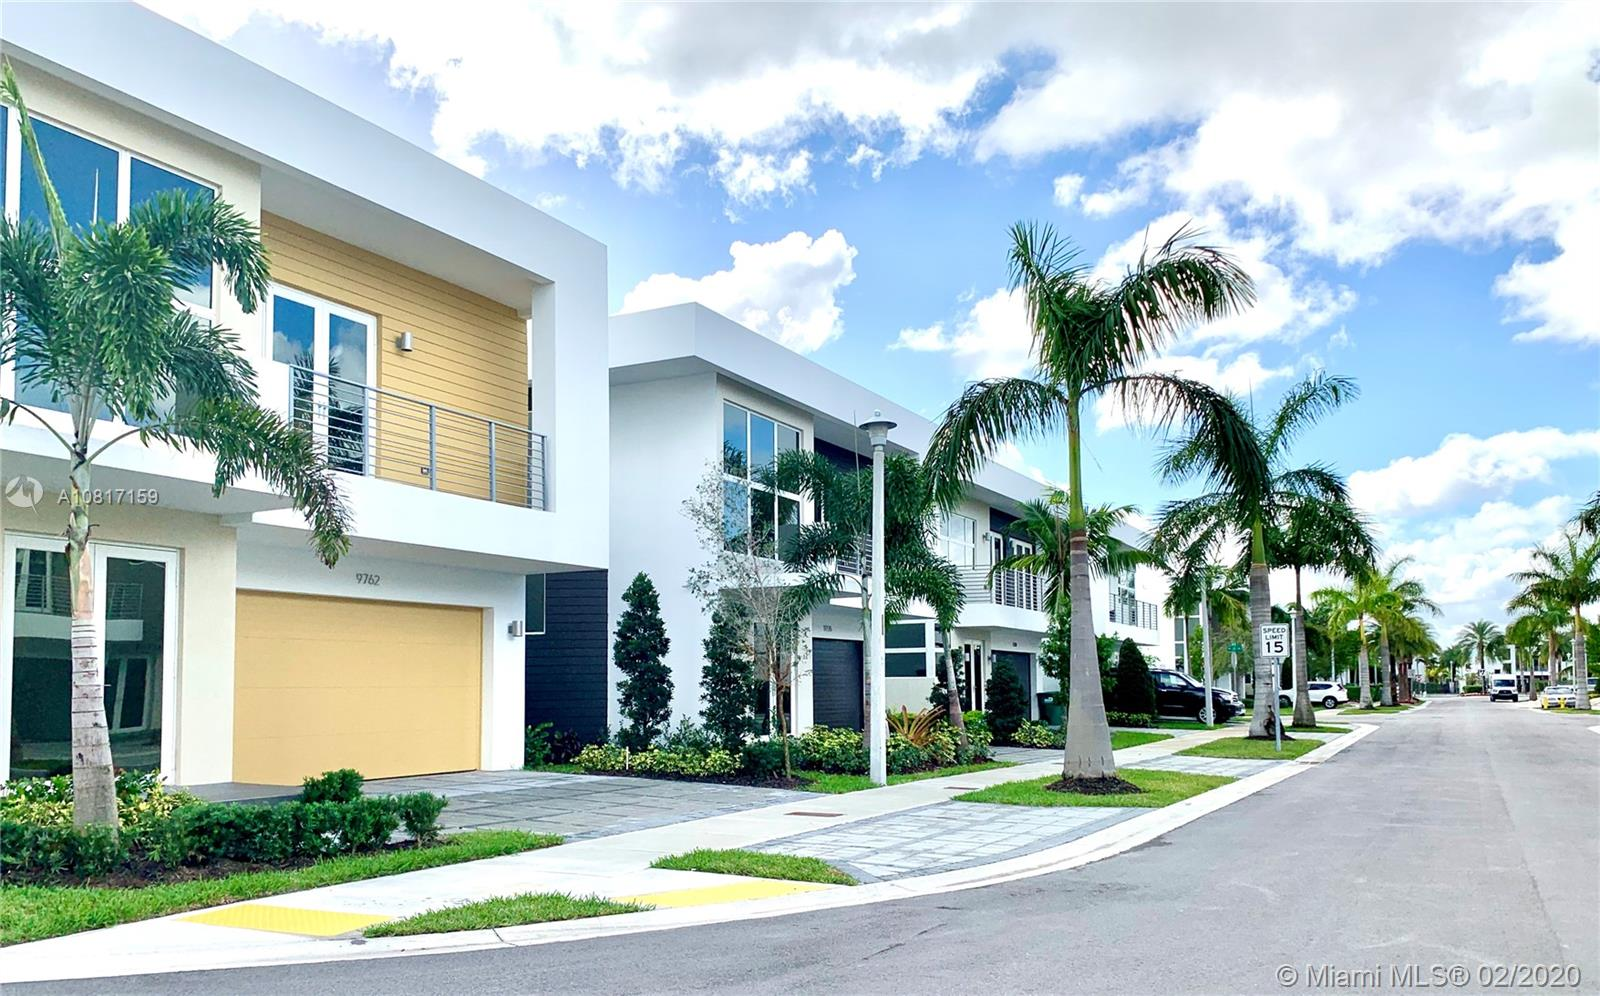 9762 NW 75th St - Doral, Florida